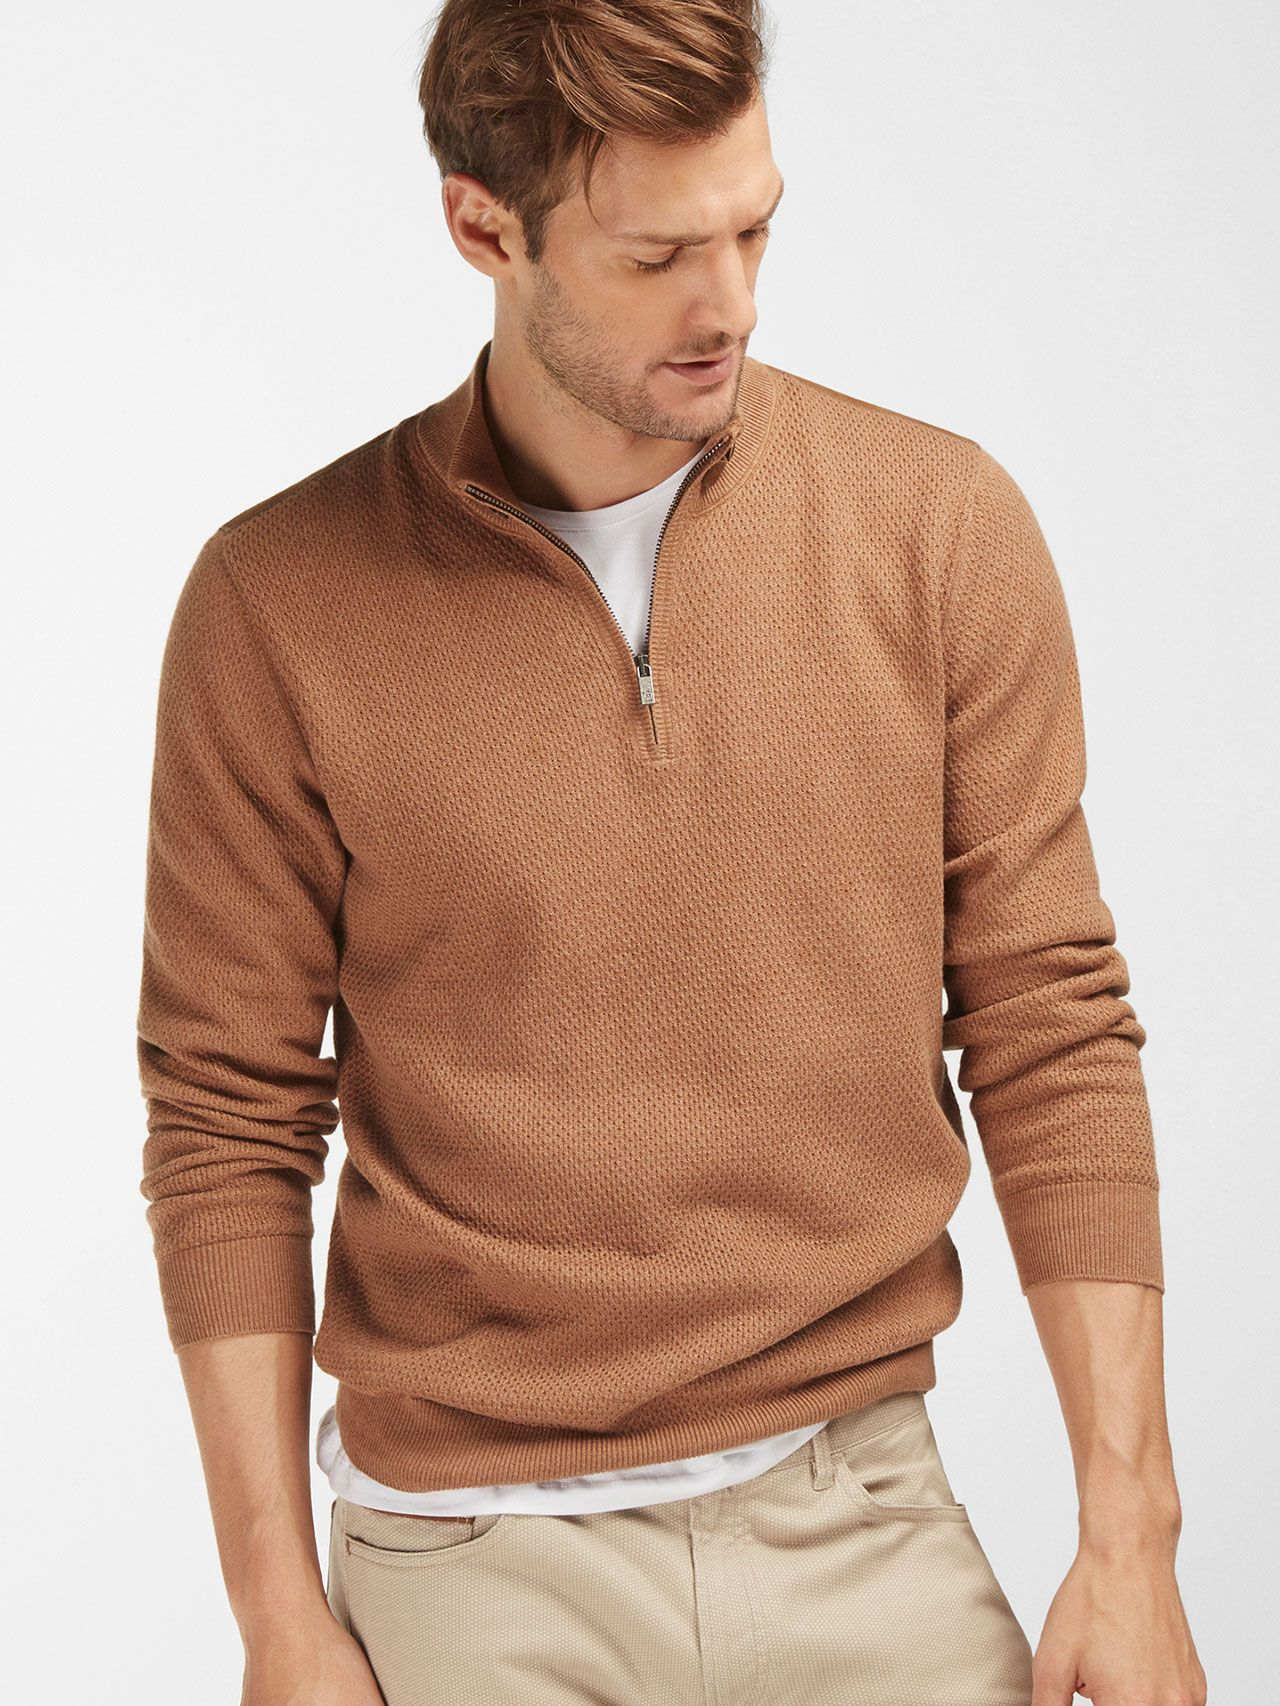 CAMEL SWEATER WITH LEATHER DETAILING - Massimo Dutti - | Massimo ...